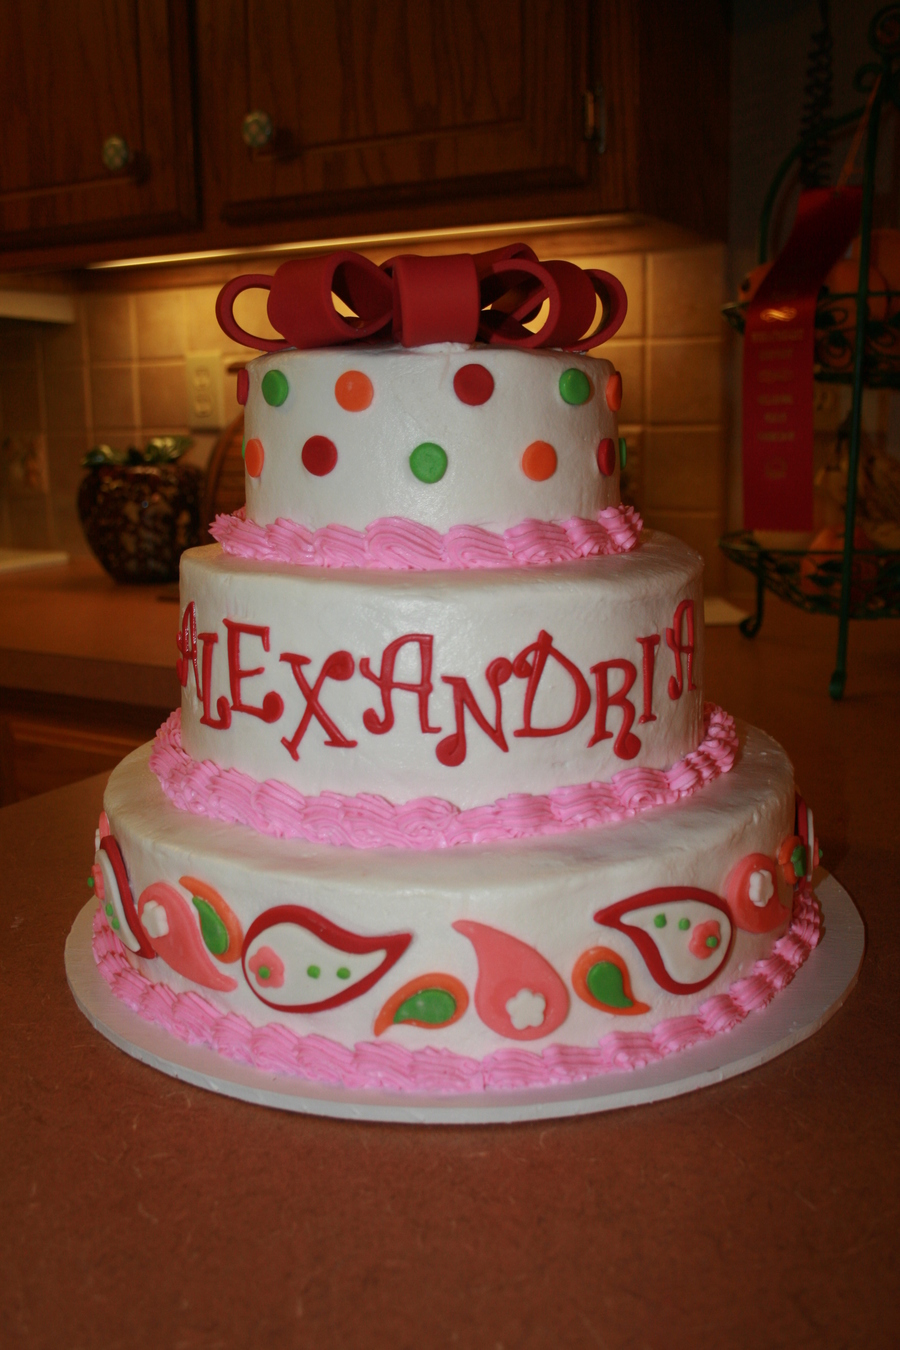 Alexandria's Cake on Cake Central